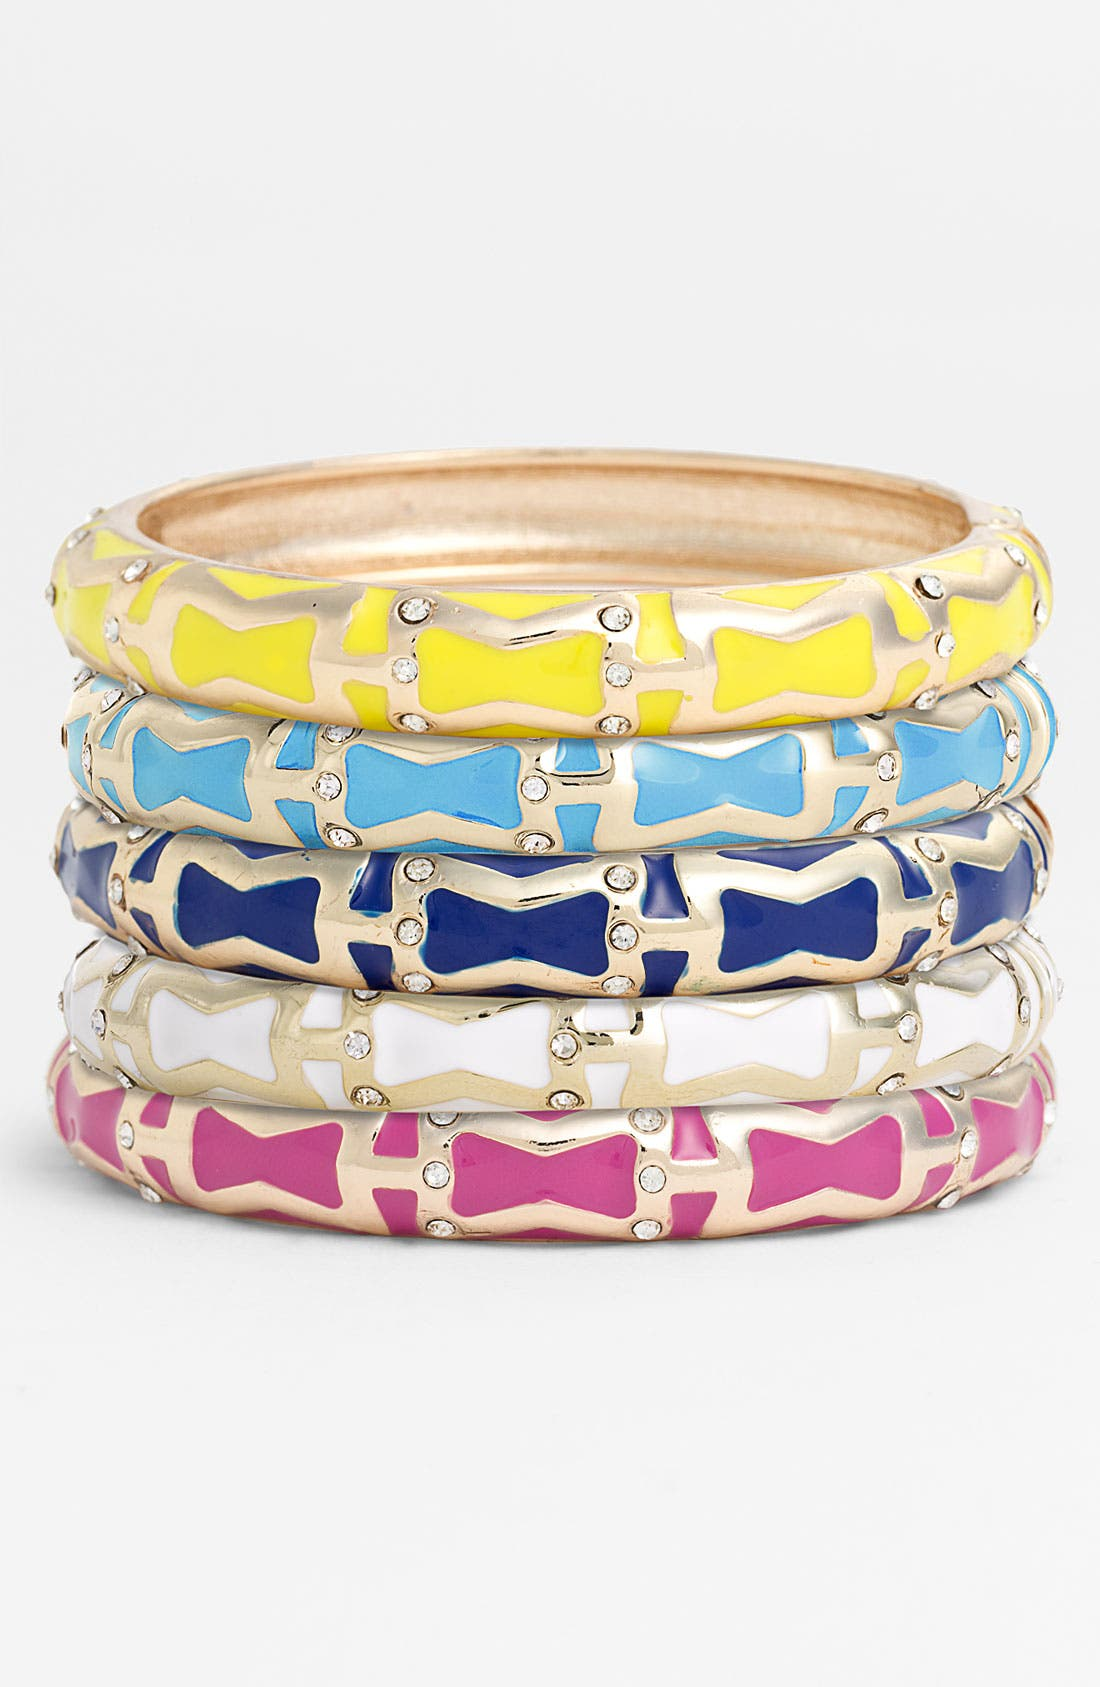 Main Image - Sequin 'Brights' Small Enamel Bangle